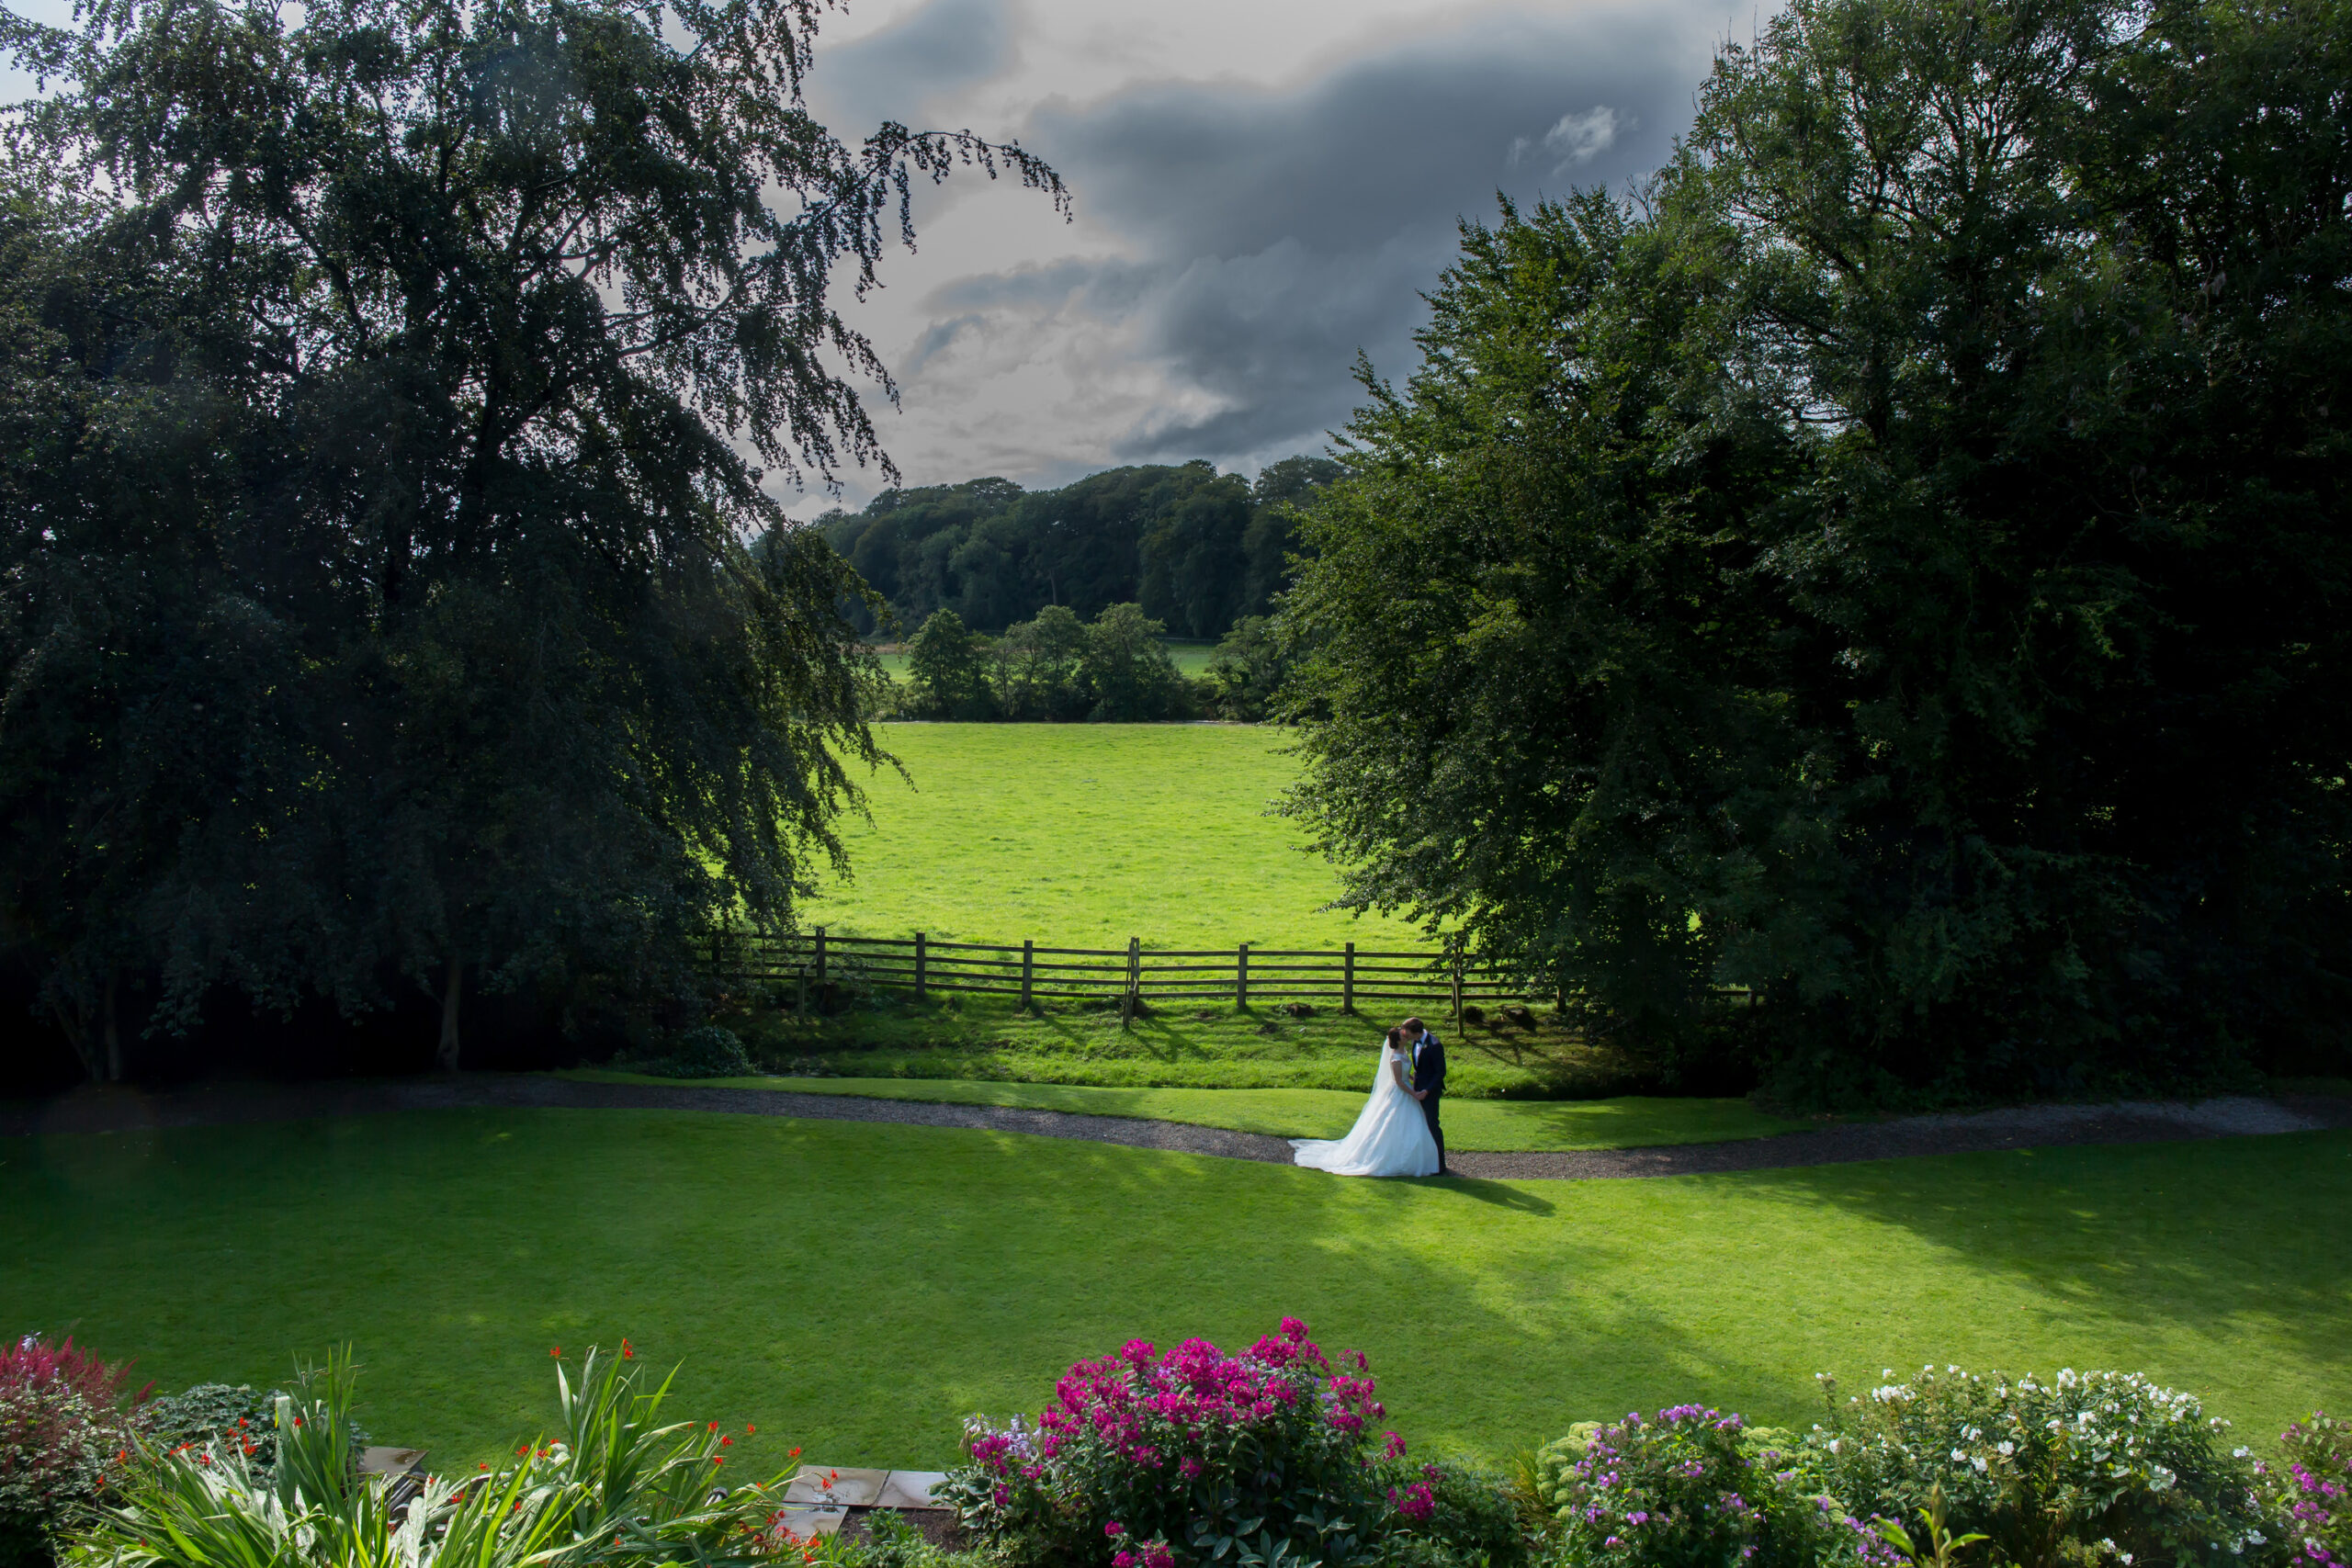 the bride and groom embrace in a wide landscape photo in the gardens of mitton hall